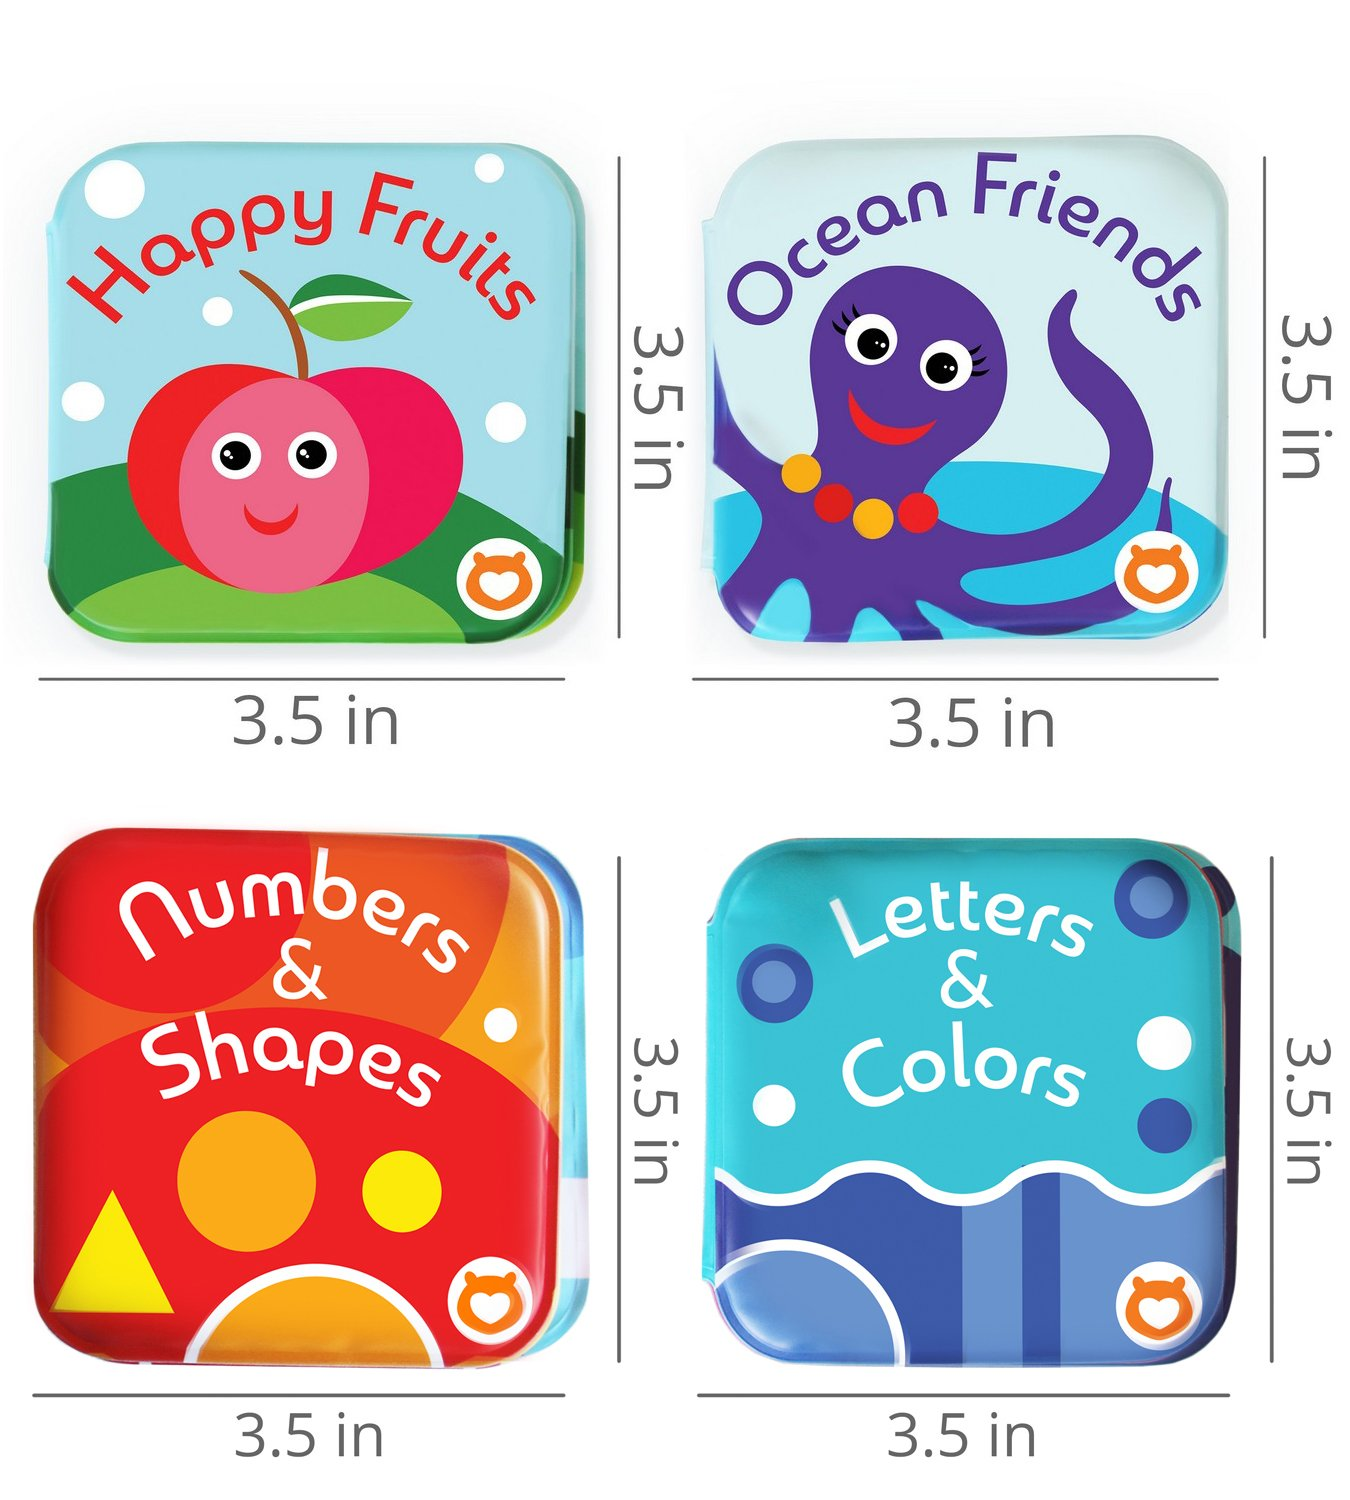 Floating Baby Bath Books Pack of 4 by Baby Bibi Bath Toys for Toddlers with Sea Creatures Alphabet /& Numbers Books 4 Bath Tub Books for Toddlers Waterproof. Baby Book Set: Fruit Books for Children